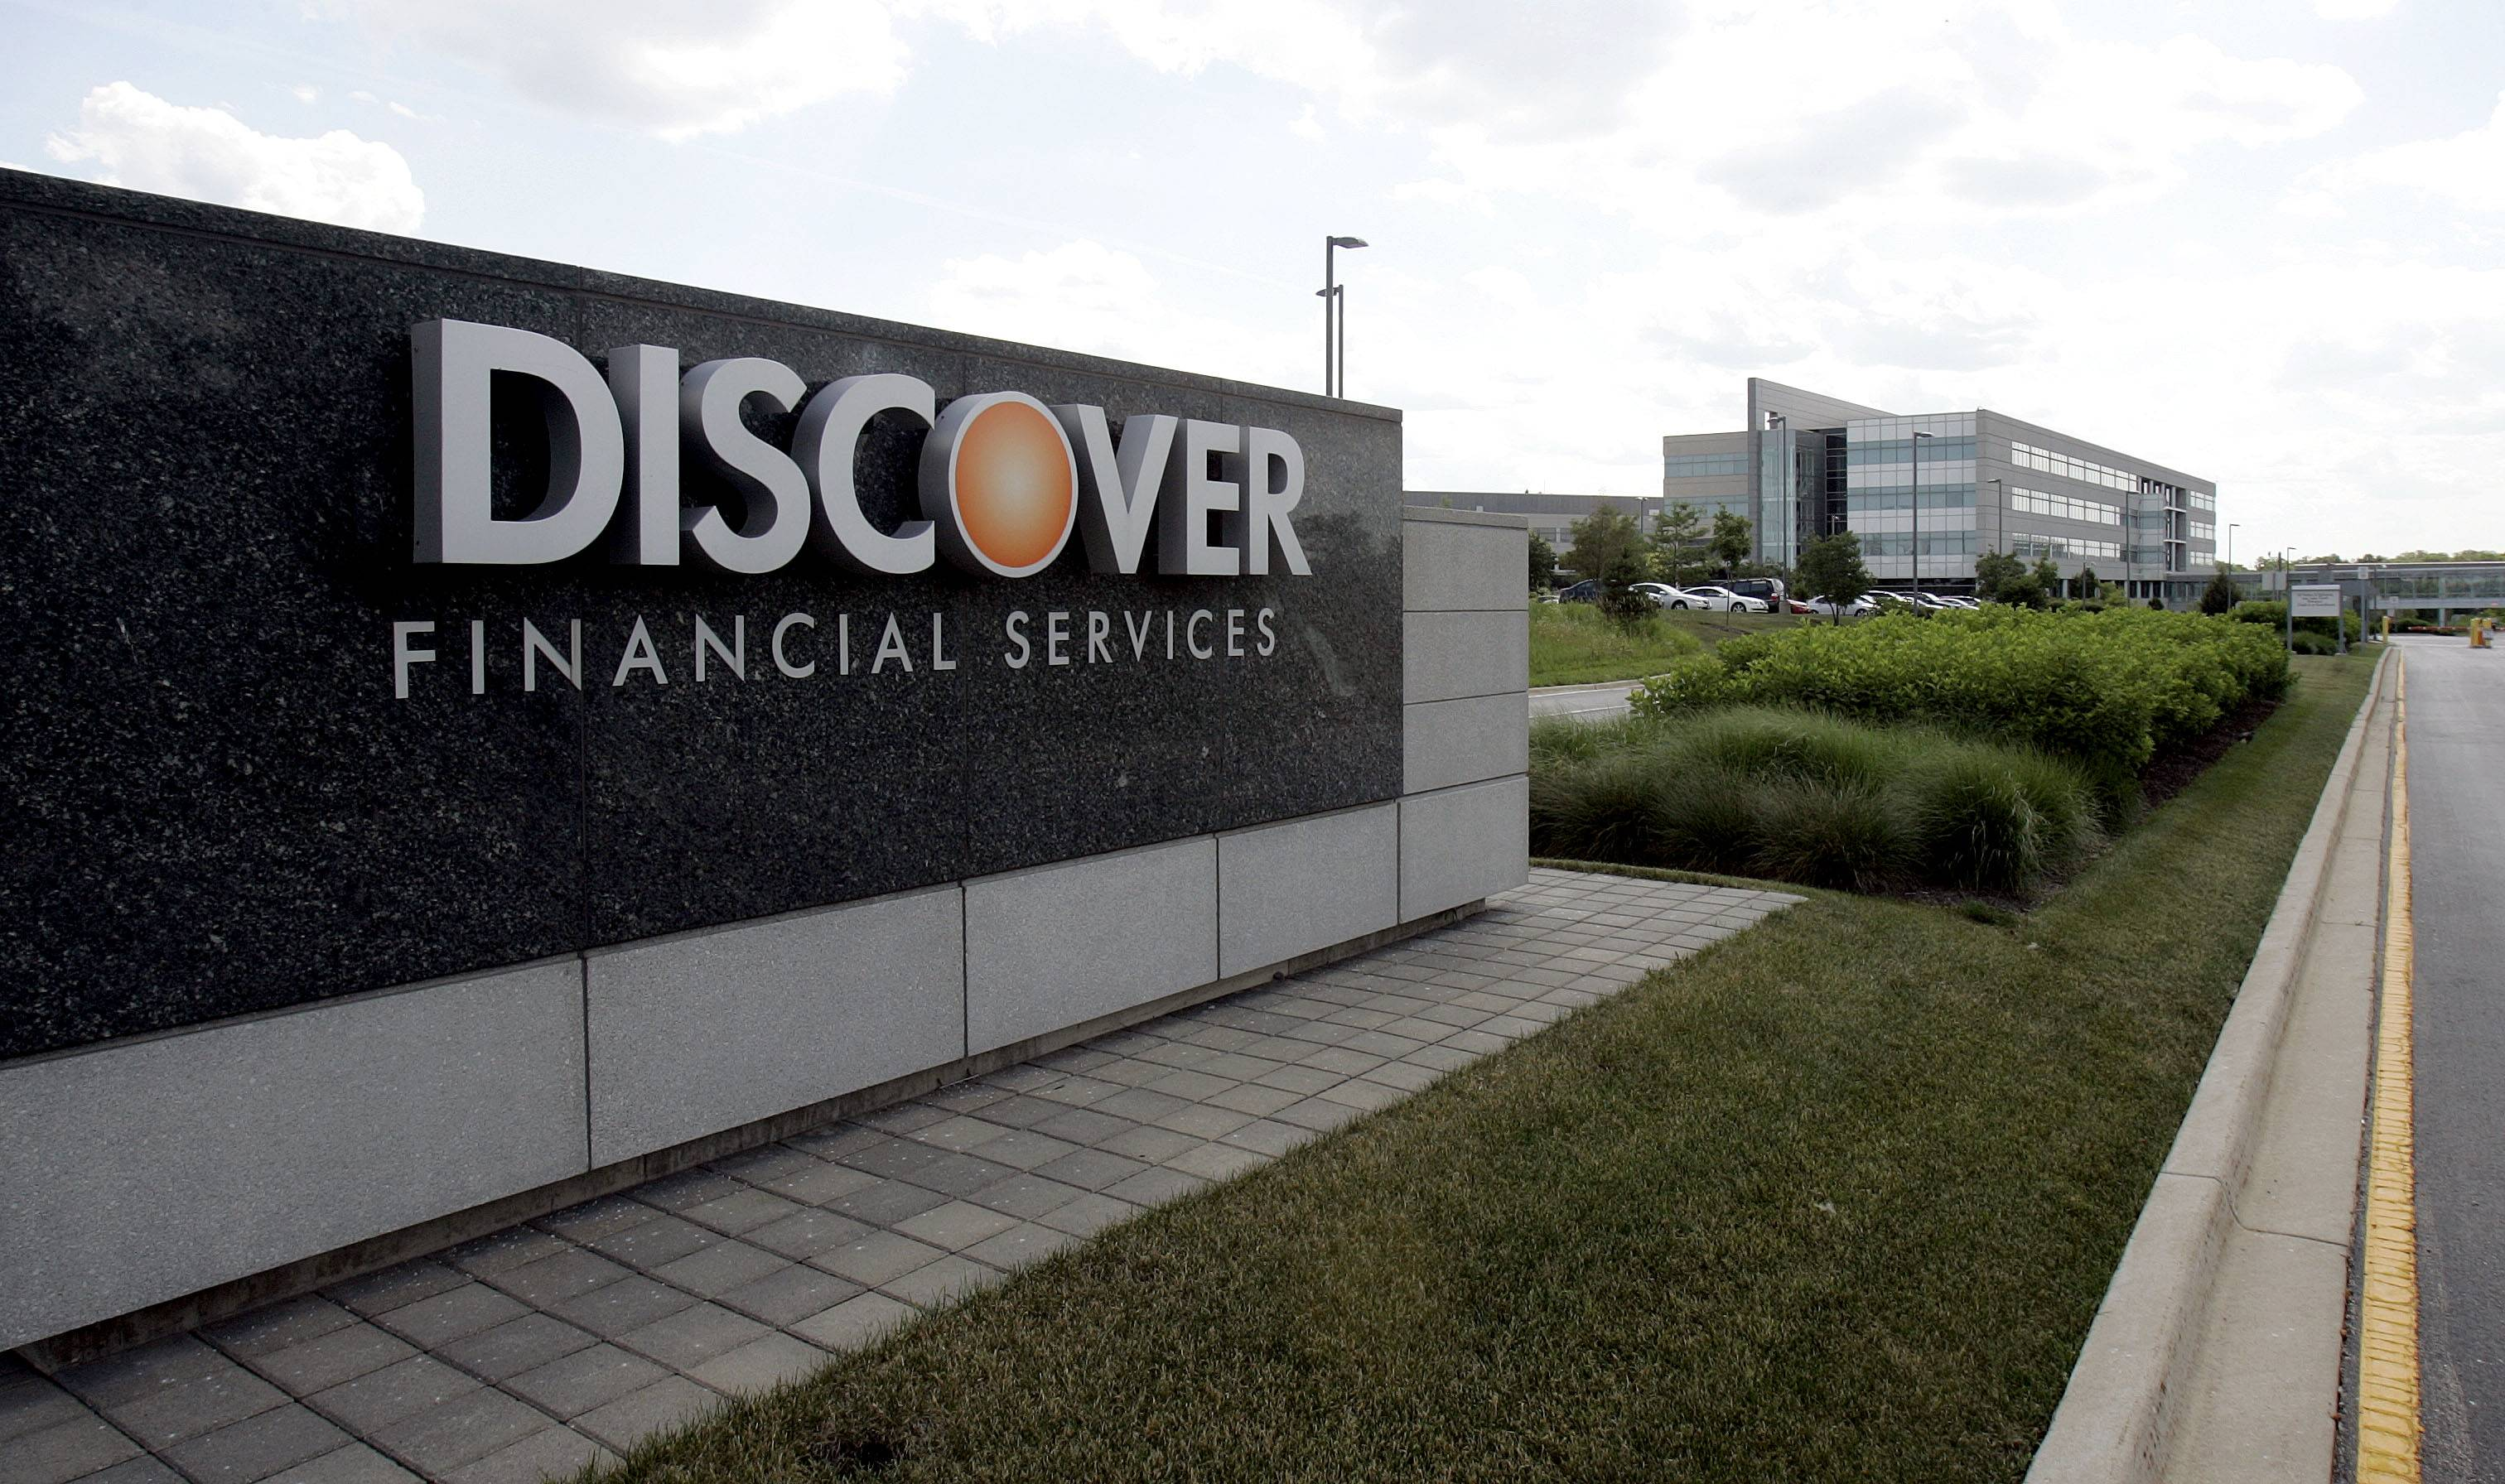 Riverwoods-based Discover Financial Services, the top performer this year in the Standard & Poor's 500 Financials Index, said U.S. regulators plan to bring an enforcement case over how the credit-card issuer marketed fee-based products.